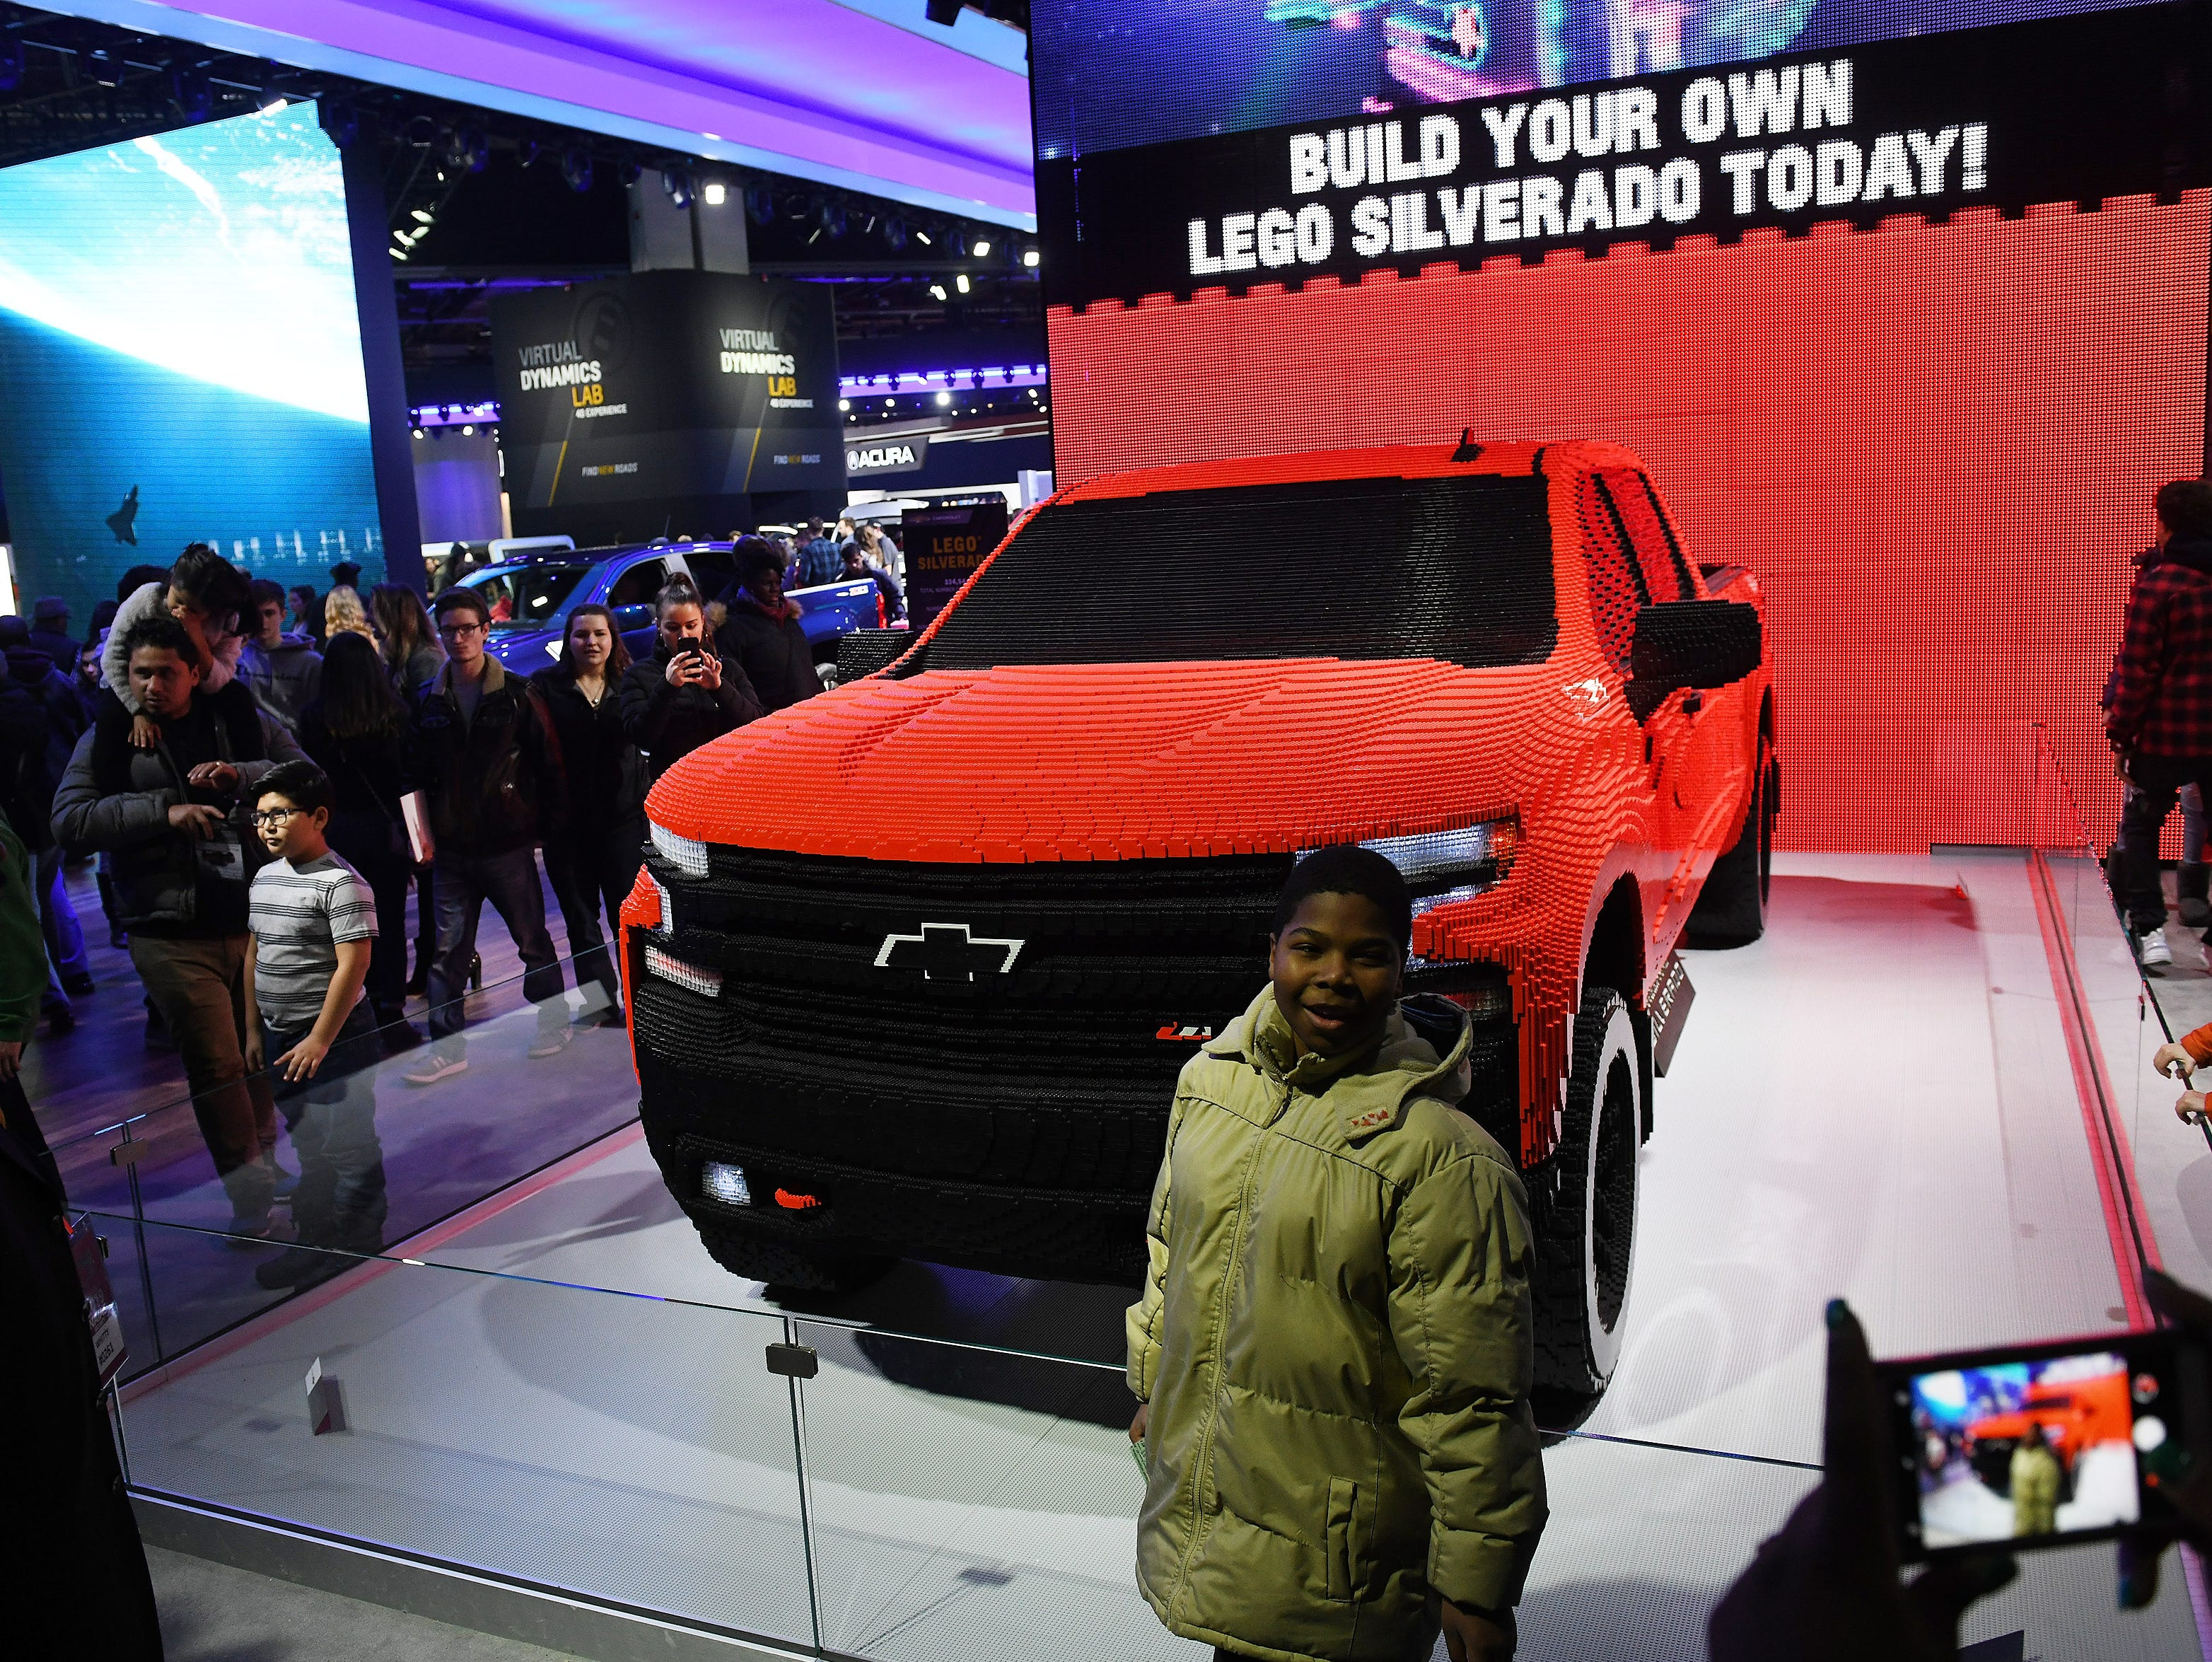 Malachi Allen, 11, of Detroit poses while his mother, Noel Allen takes a photo of him in front of the Lego version of a Chevy Silverado at the North American International Auto Show at Cobo Center in Detroit on January 20, 2019.